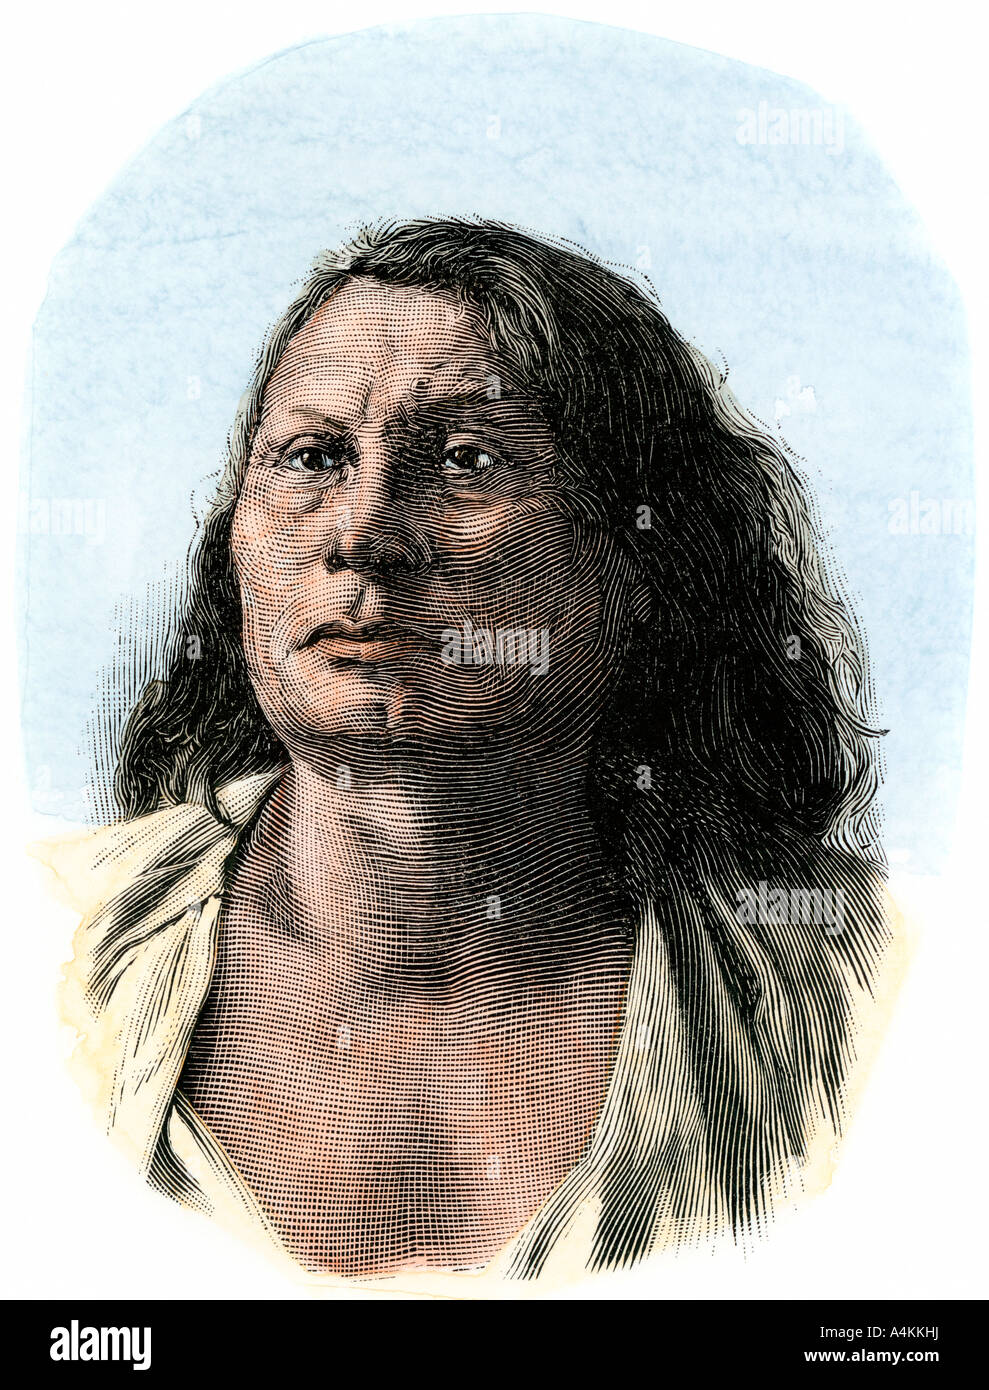 Chief Gall a Sioux leader in the Battle of the Little Bighorn. Hand-colored woodcut - Stock Image